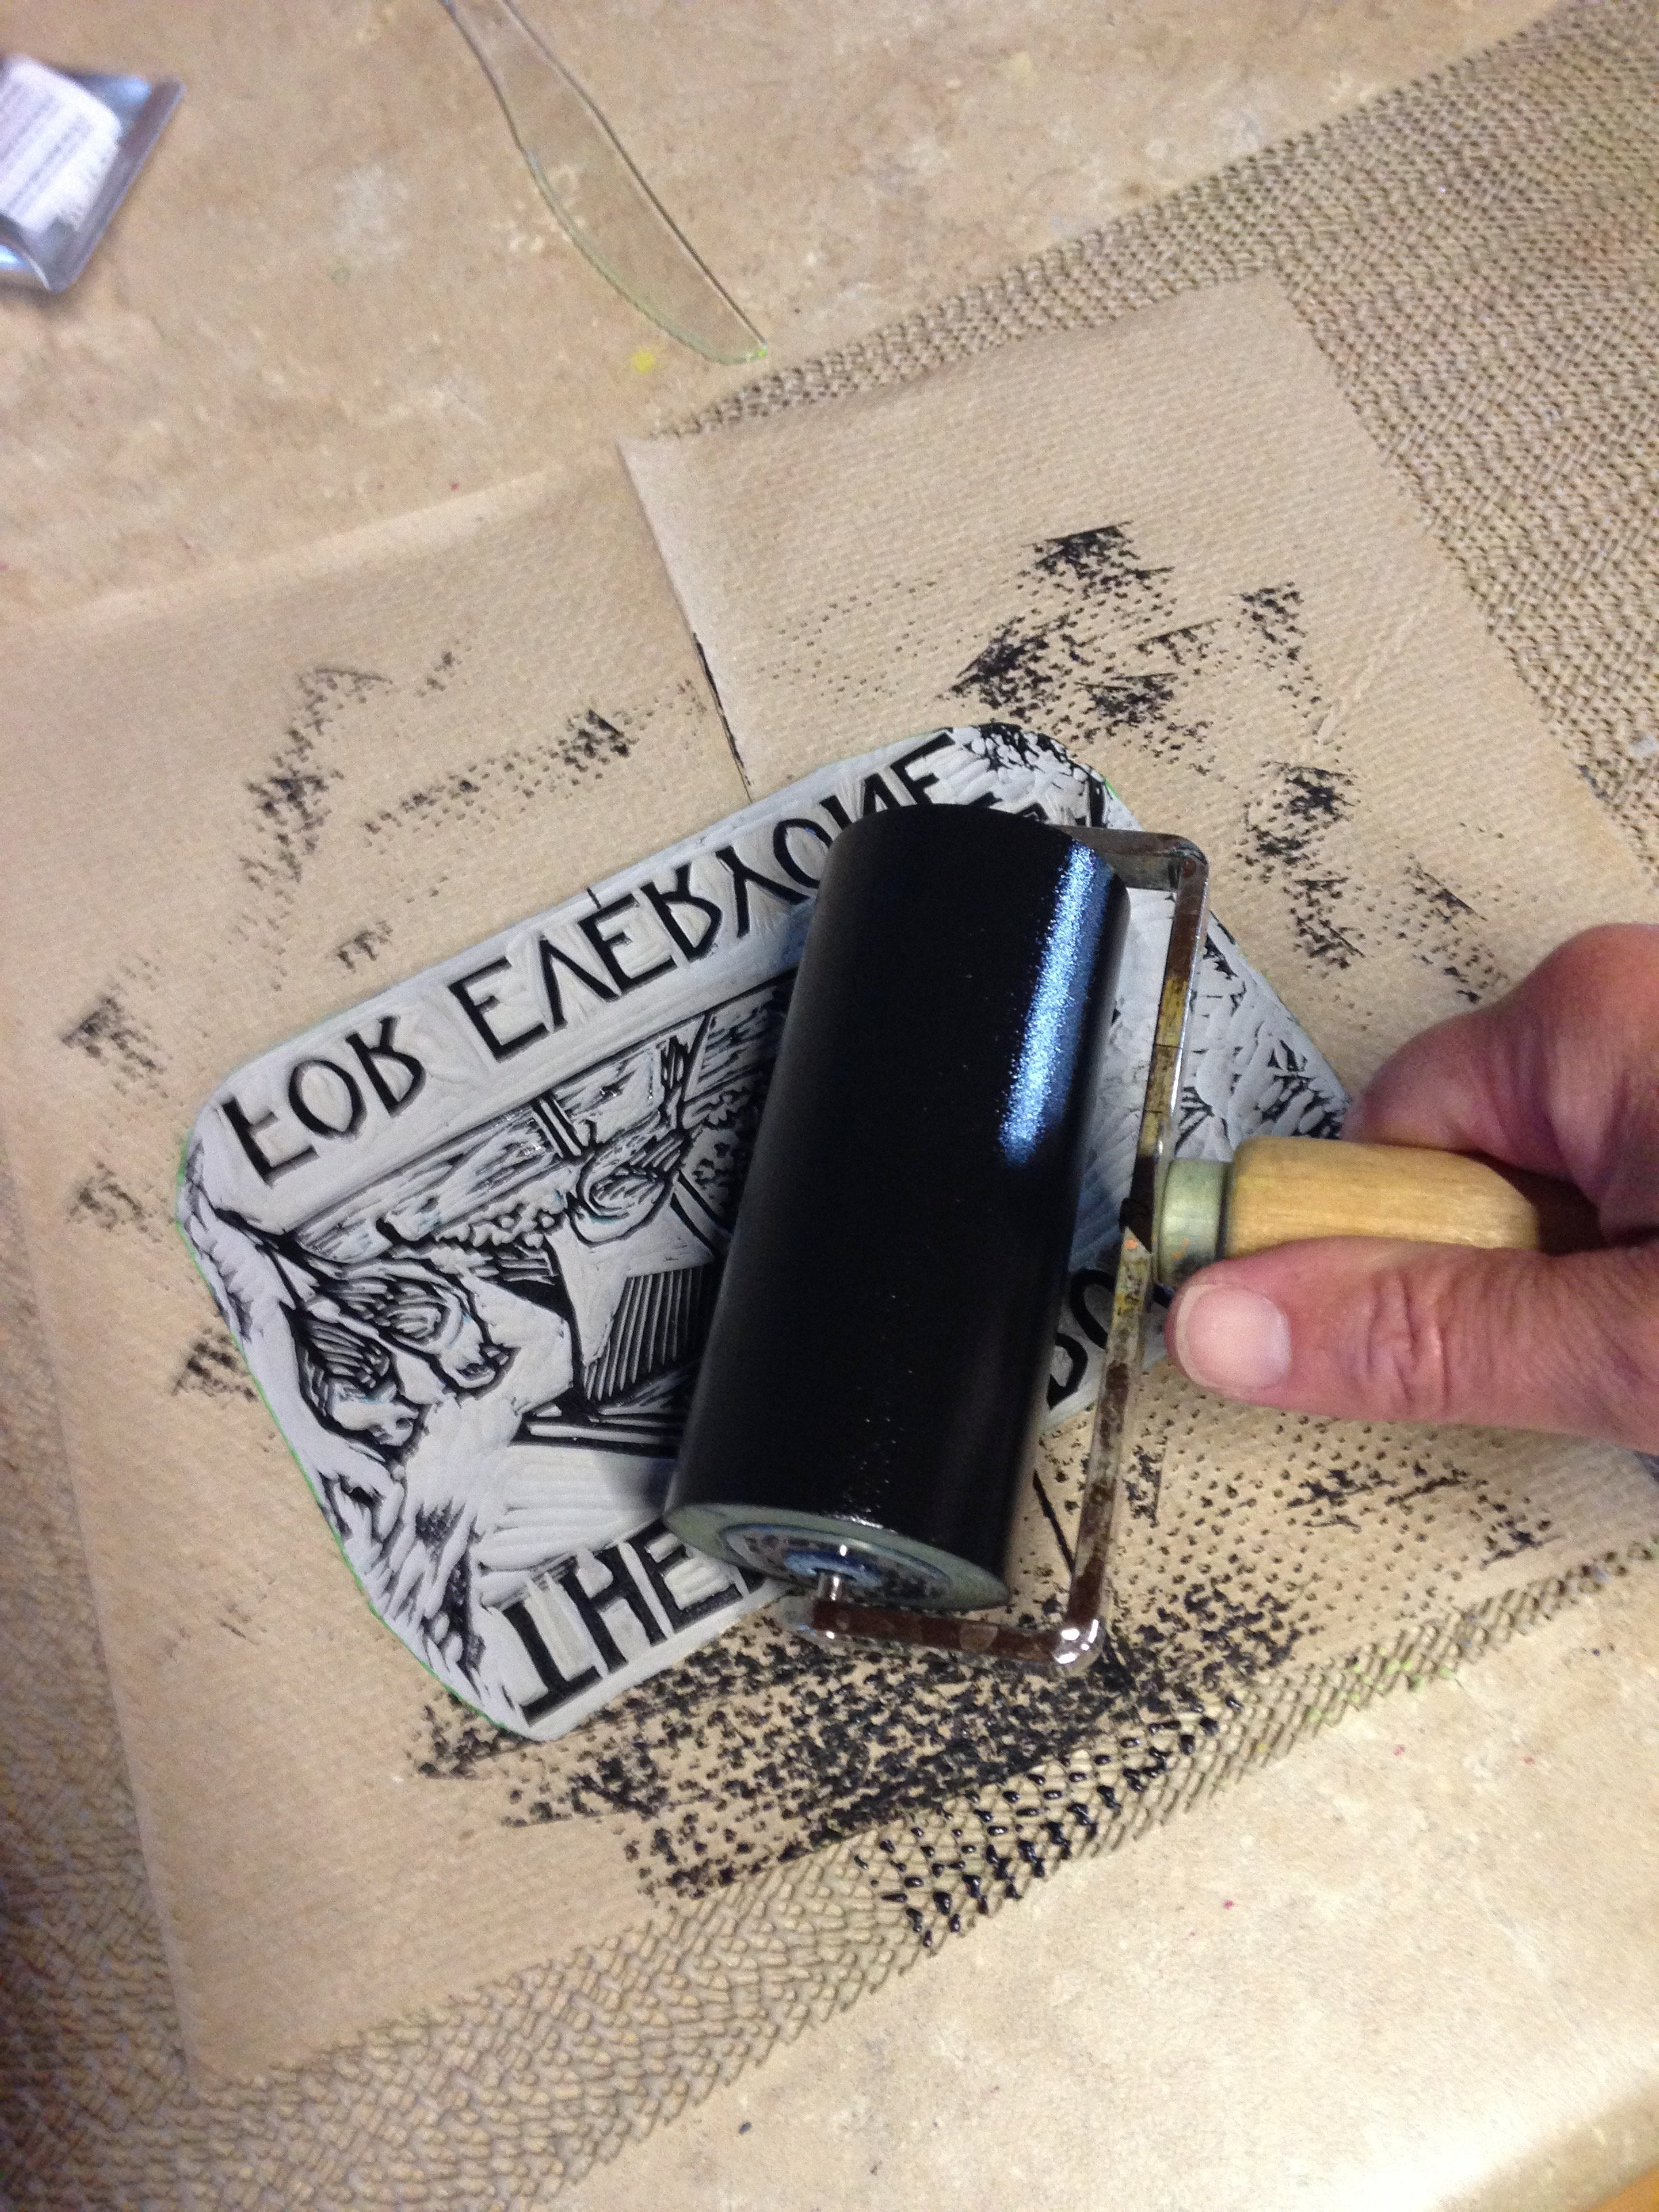 each print is done completely by hand, from inking to pressing the plate.